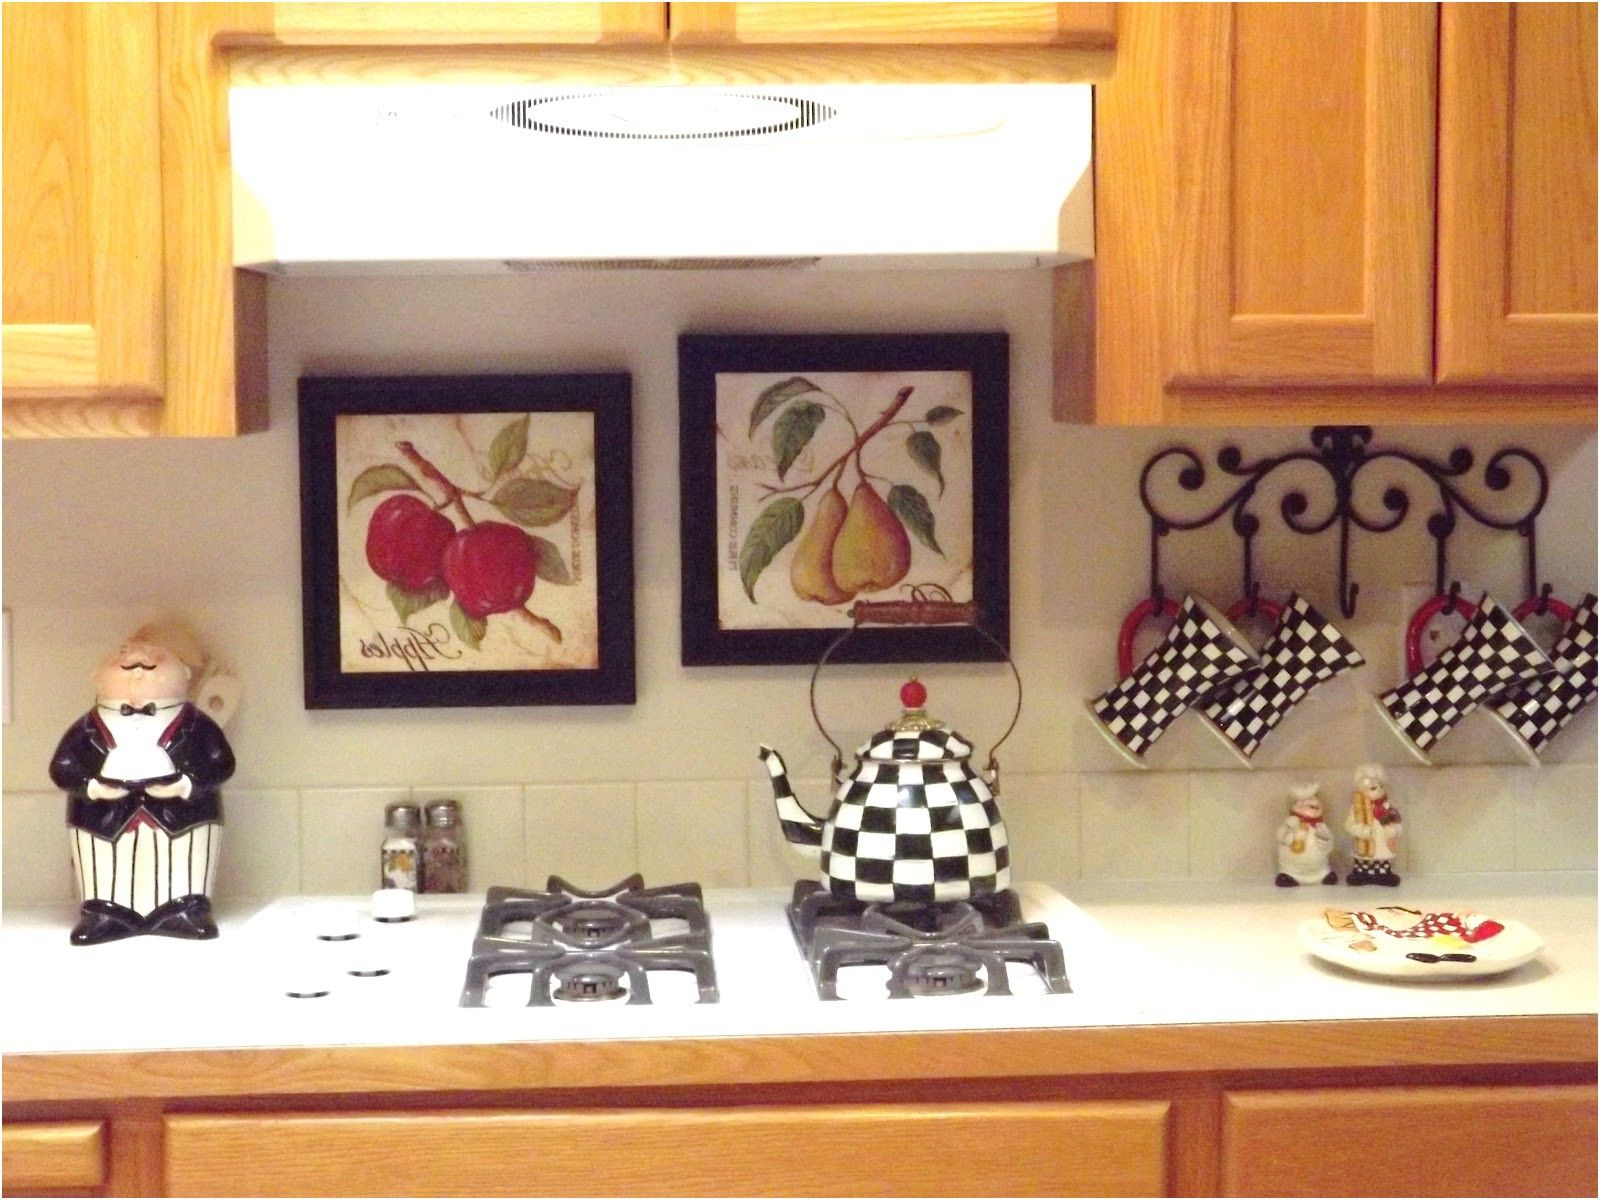 Elegant Black And White Checkered Kitchen Decor 21 About Remodel From Black  And White Check Kitchen